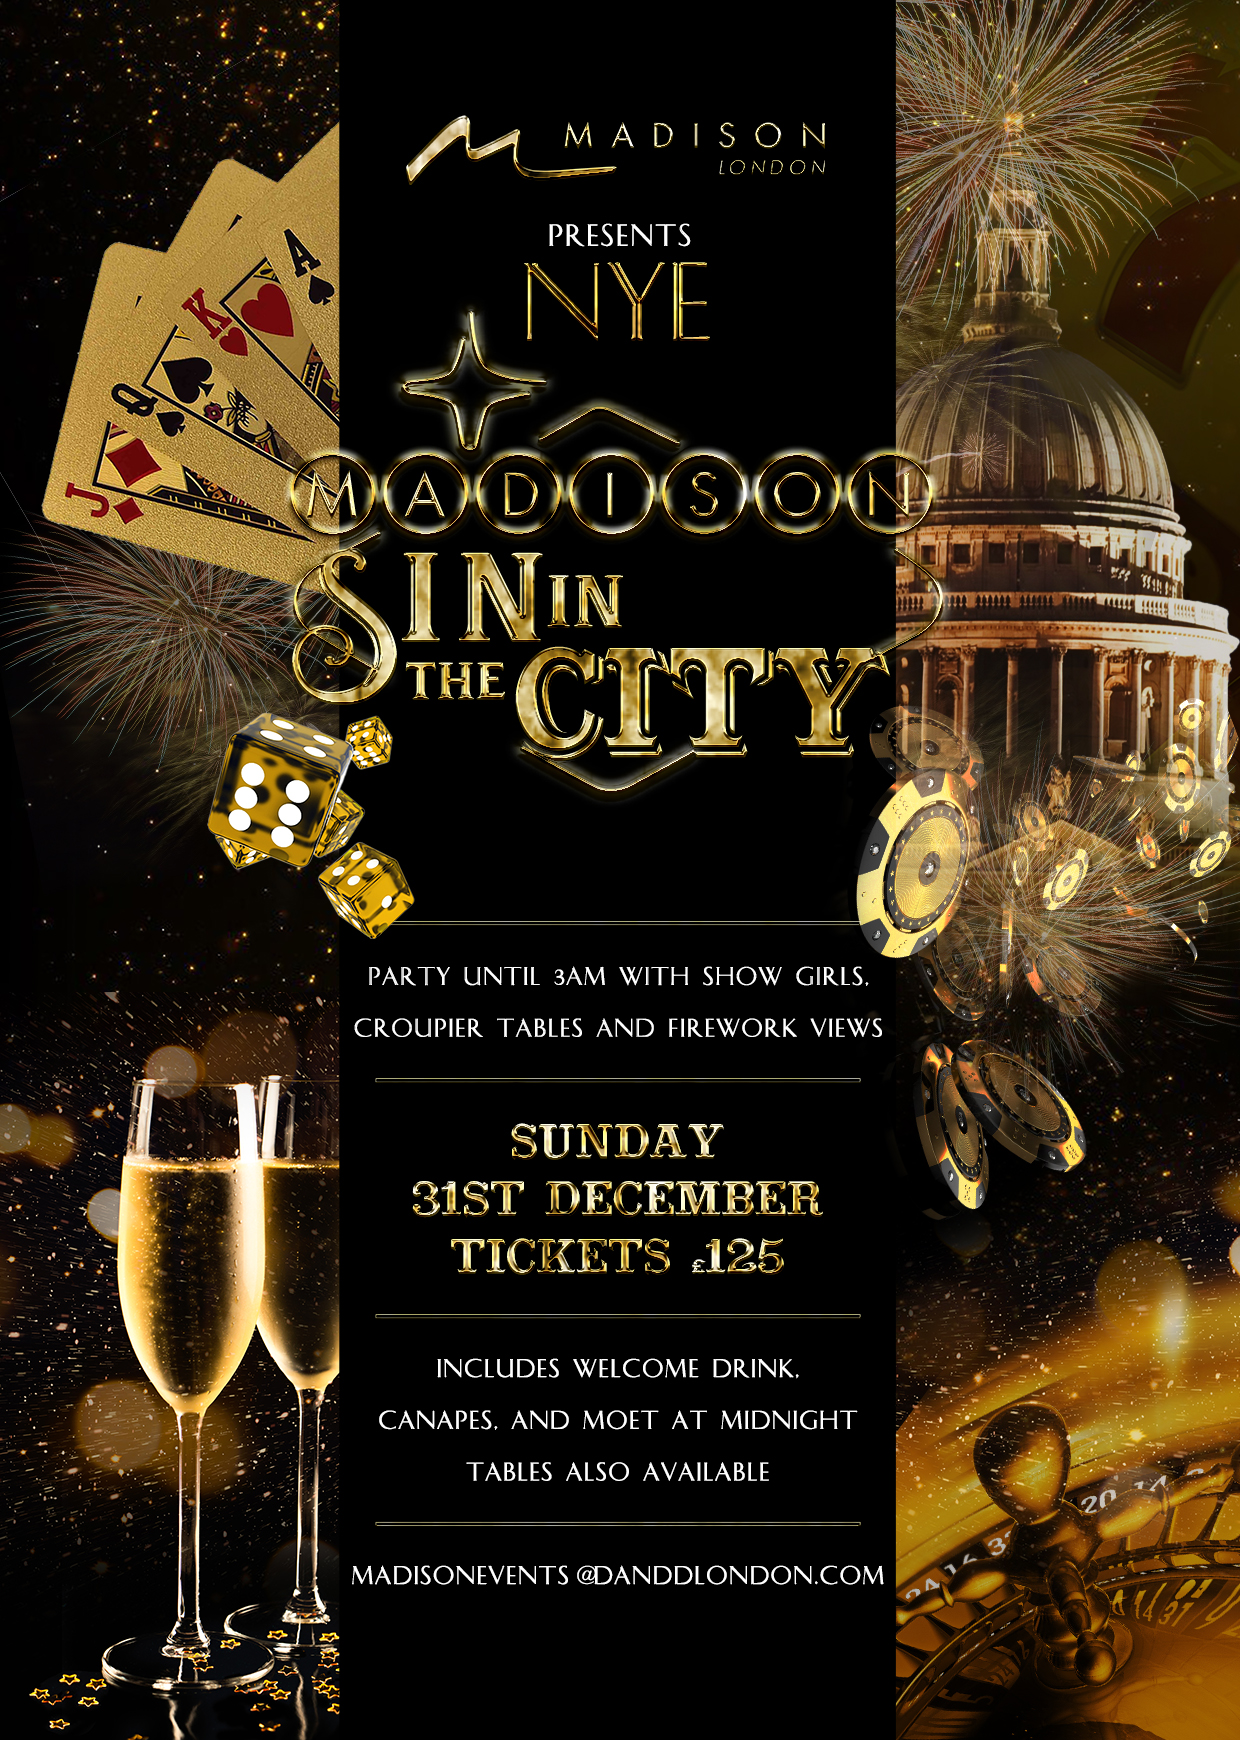 SIN IN THE CITY – NEW YEAR'S EVE AT MADISON